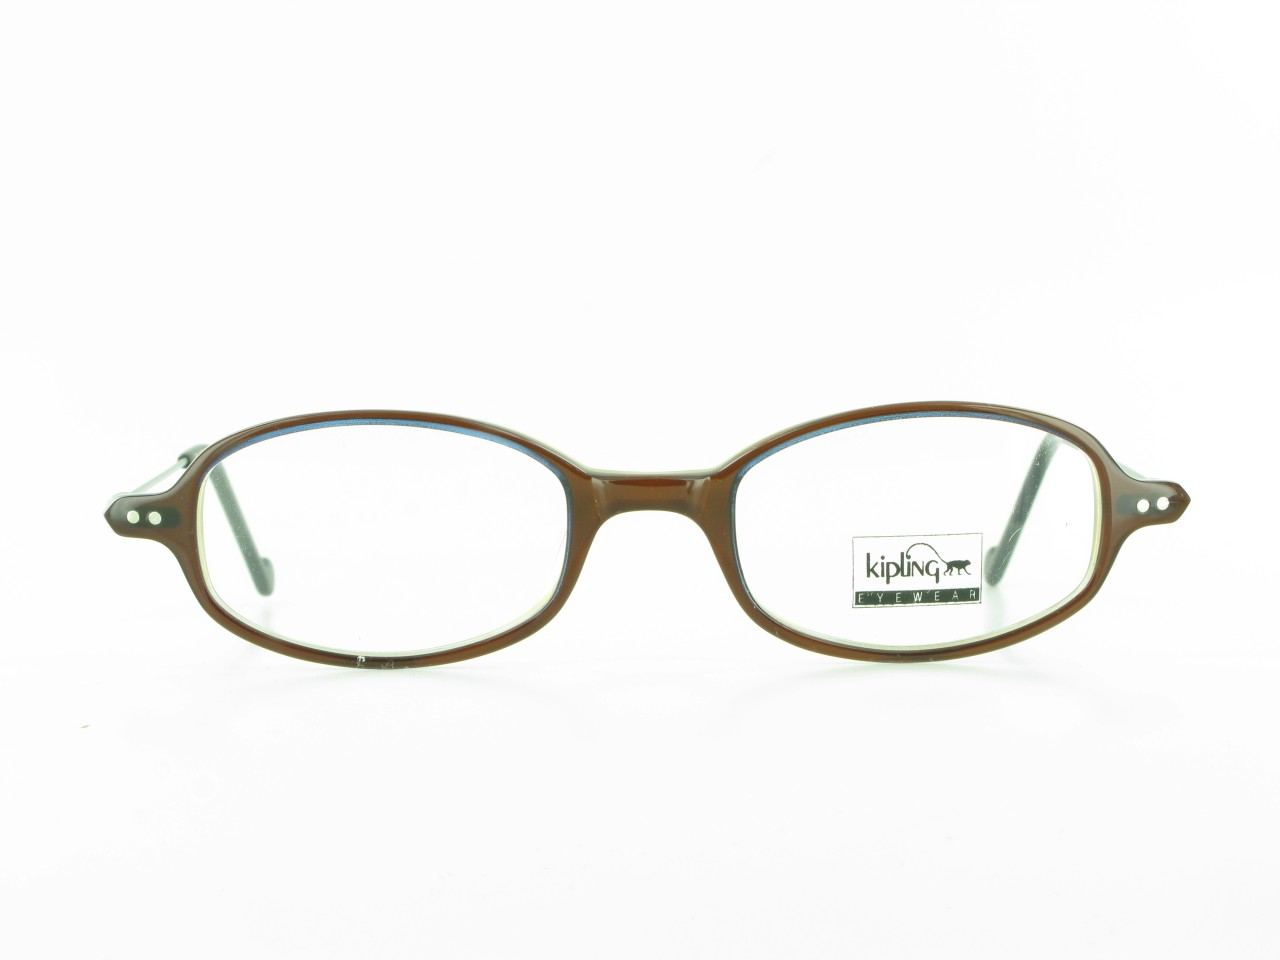 Kipling Glasses Frame : KIPLING Designer EYEGLASS FRAMES Men Women Rectangular ...